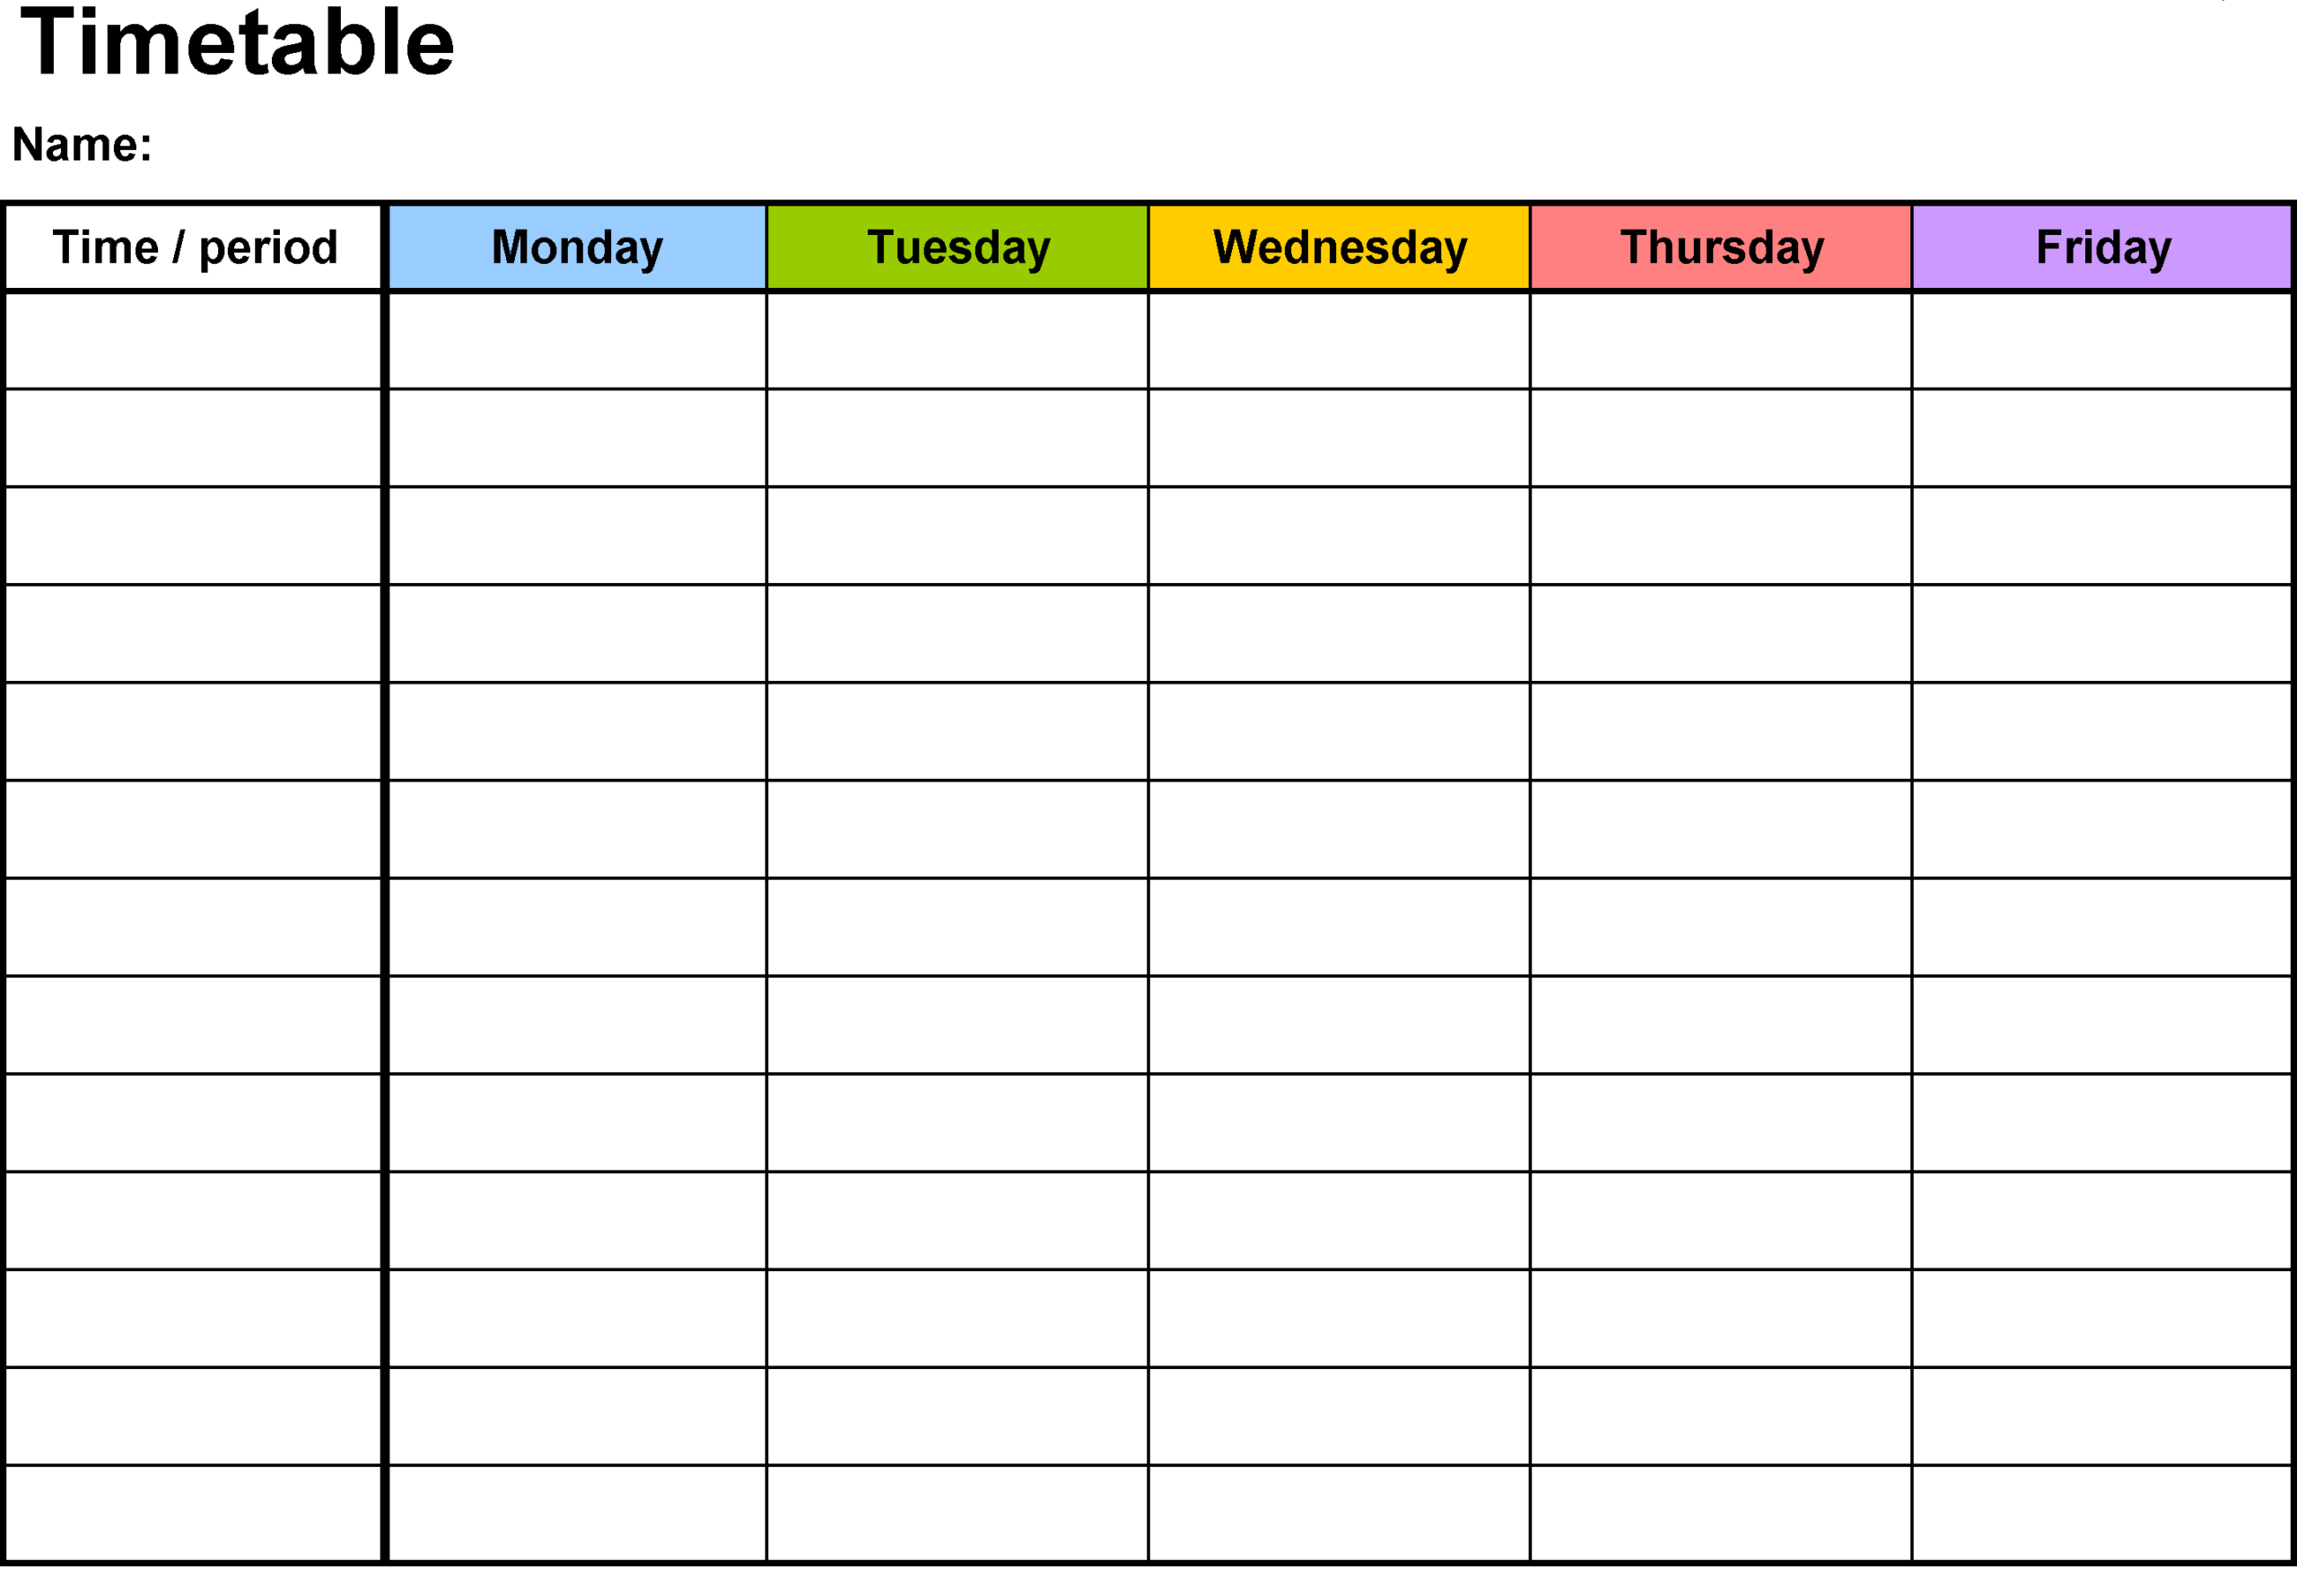 Employee weekly Tracker Sheet calendar